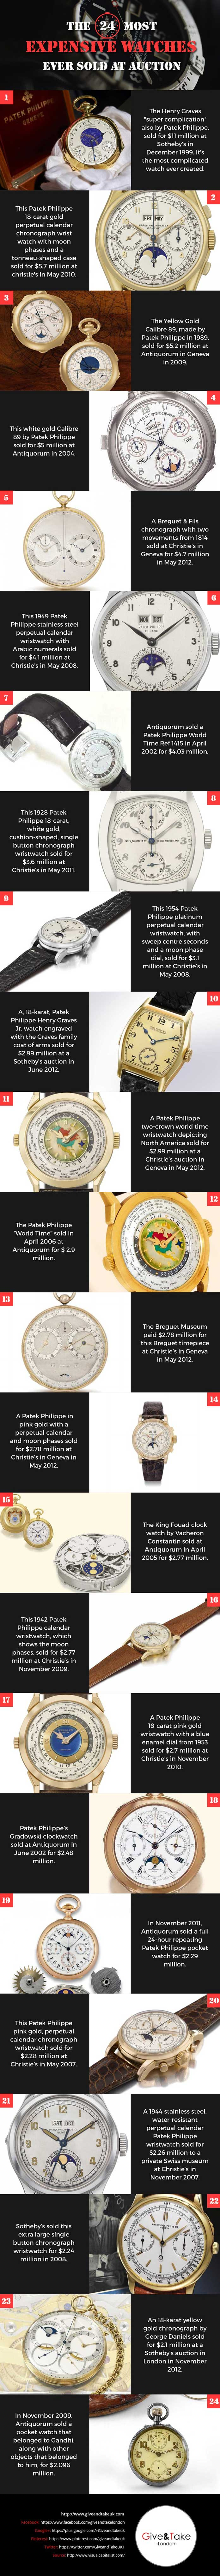 The-24-Most-Expensive-Watches-Ever-Sold-at-Auction